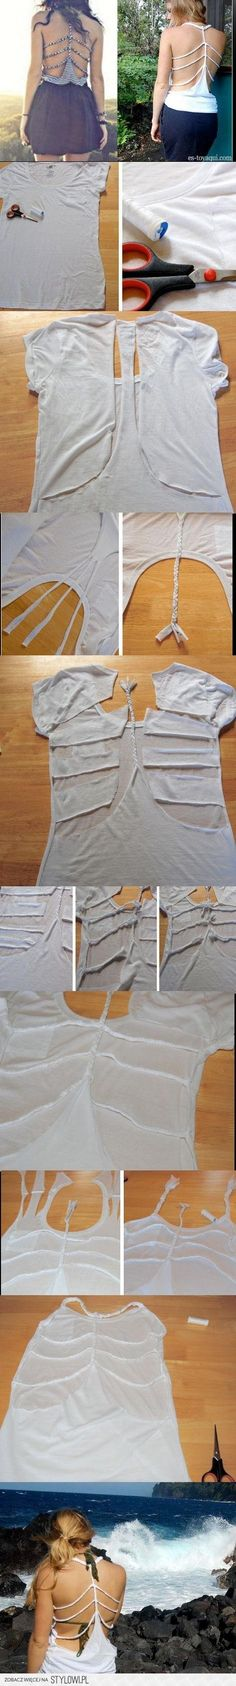 30 Elegant Photo of Sewing Tshirts Refashion . Sewing Tshirts Refashion 40 Simple No Sew Diy Clothing Hacks Designs And Ideas Styles Weekly Upcycled Crafts, Diy Crafts, Teen Crafts, Fashion Bubbles, Sewing Projects, Projects To Try, Sewing Ideas, Diy Clothes Refashion, Shirt Refashion